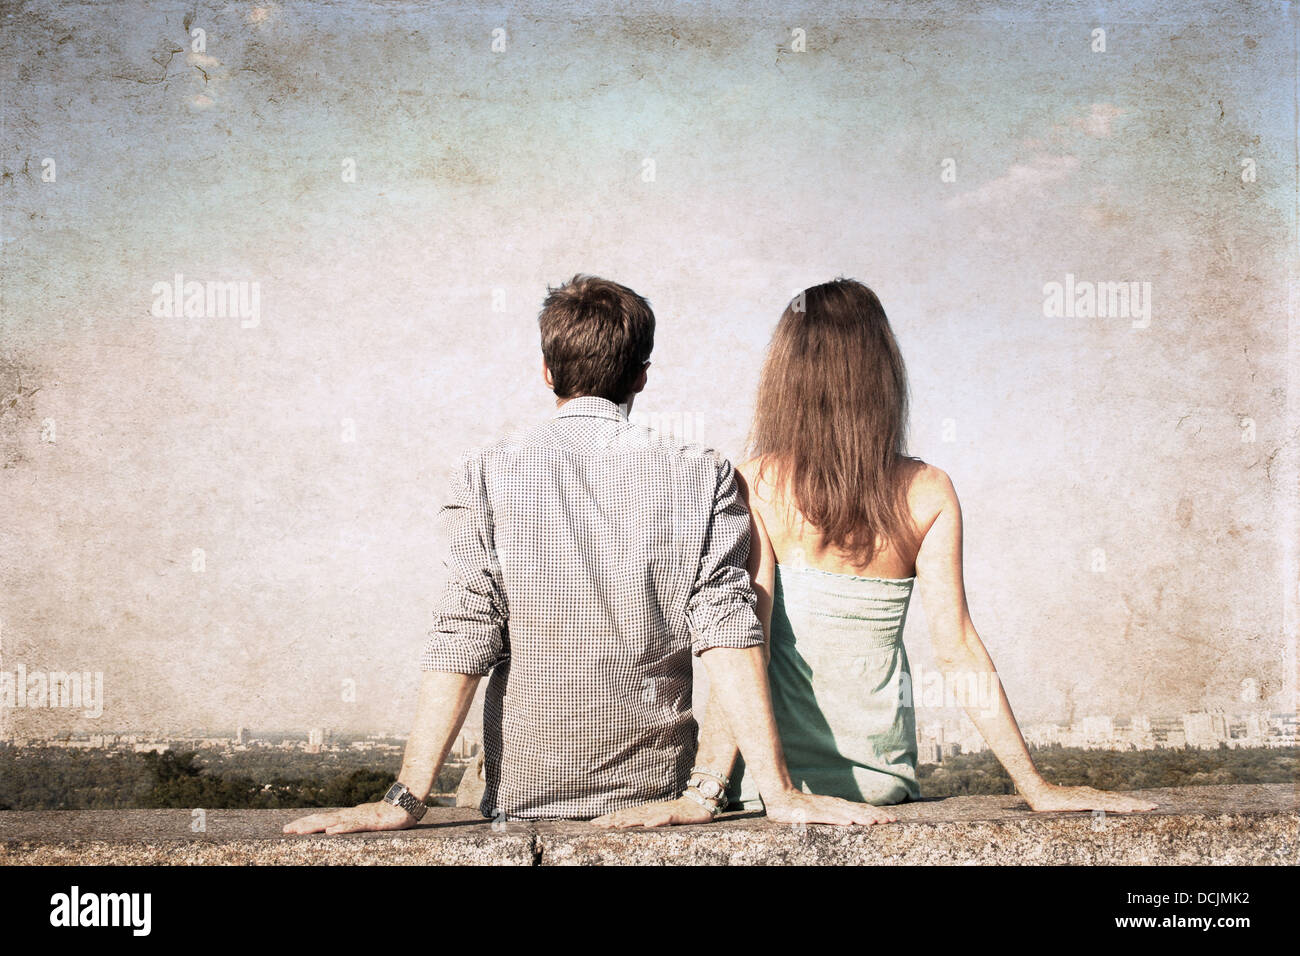 artwork in grunge style, girl and boy - Stock Image